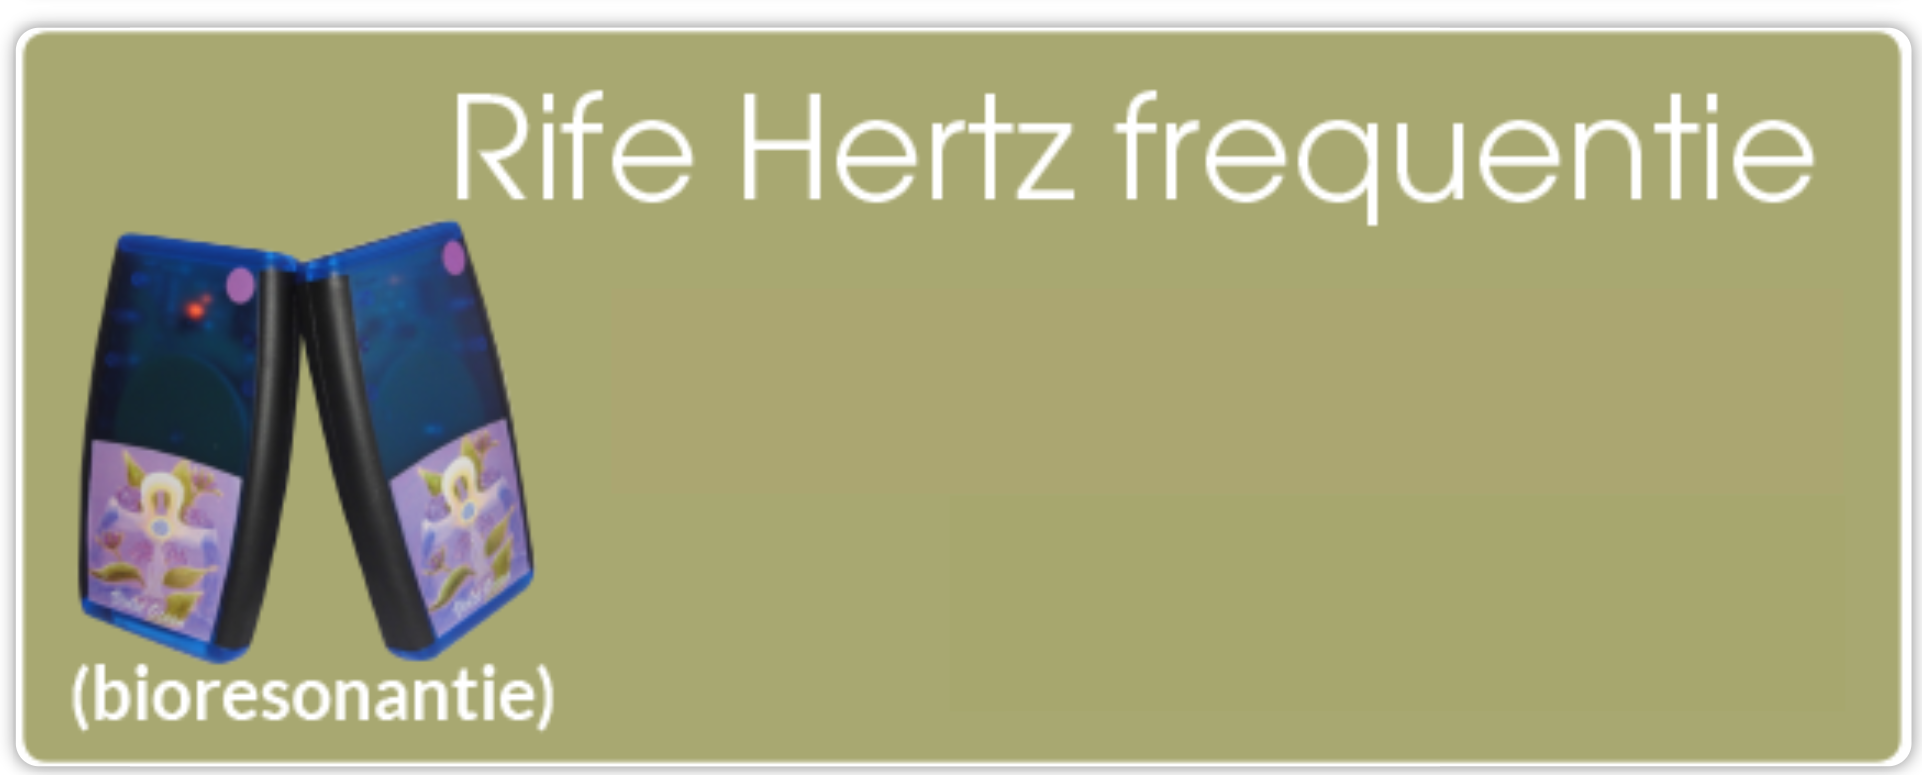 Rife Hertz Frequenties